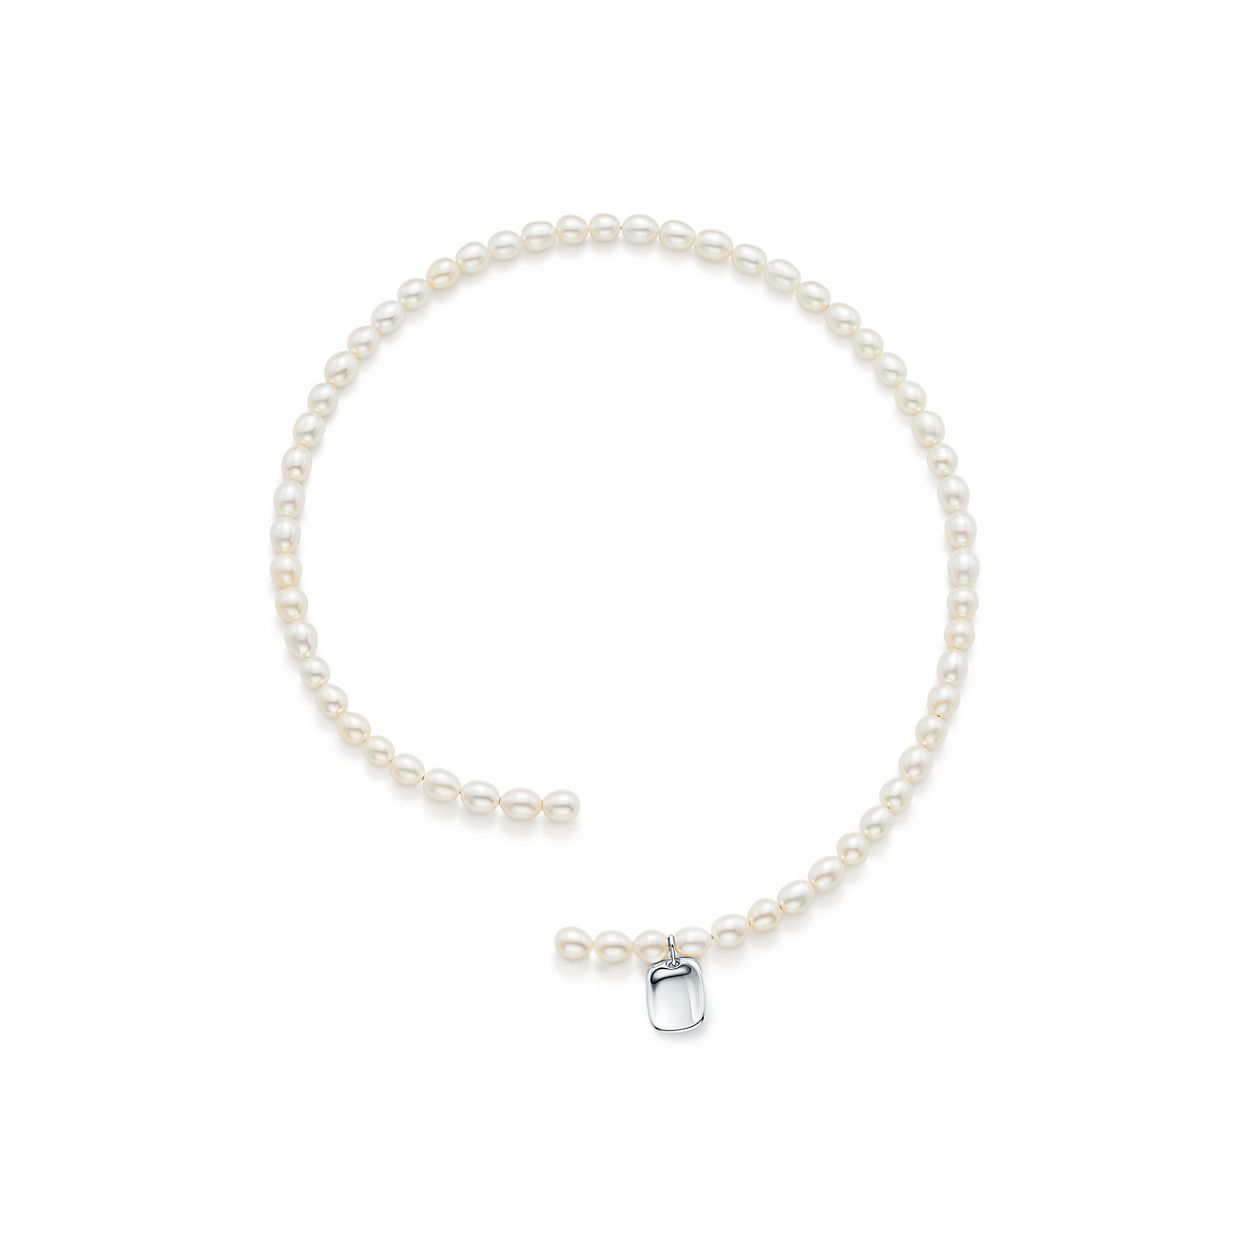 Elsa Peretti freshwater pearl necklace with sterling silver star charm Tiffany & Co. aO16aB